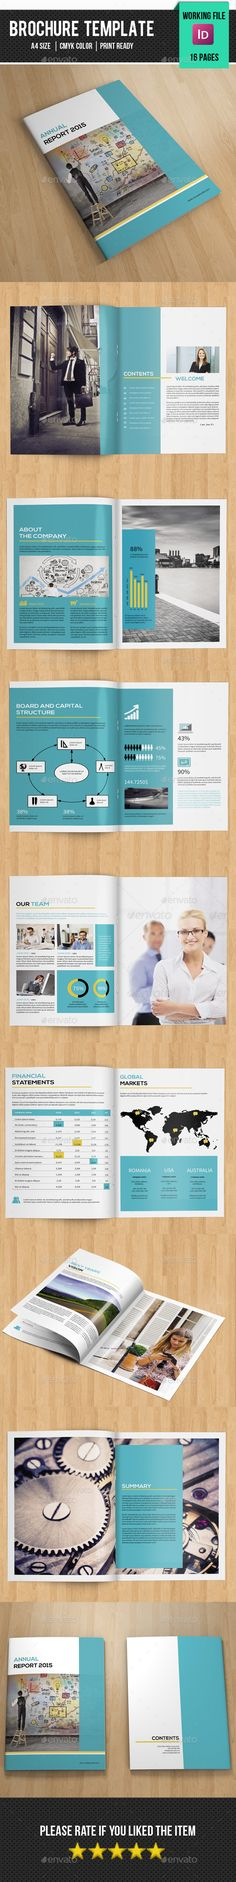 Annual Report Brochure-V272 - Corporate Brochure Template InDesign INDD. Download here: http://graphicriver.net/item/annual-report-brochurev272/12003819?s_rank=1712&ref=yinkira